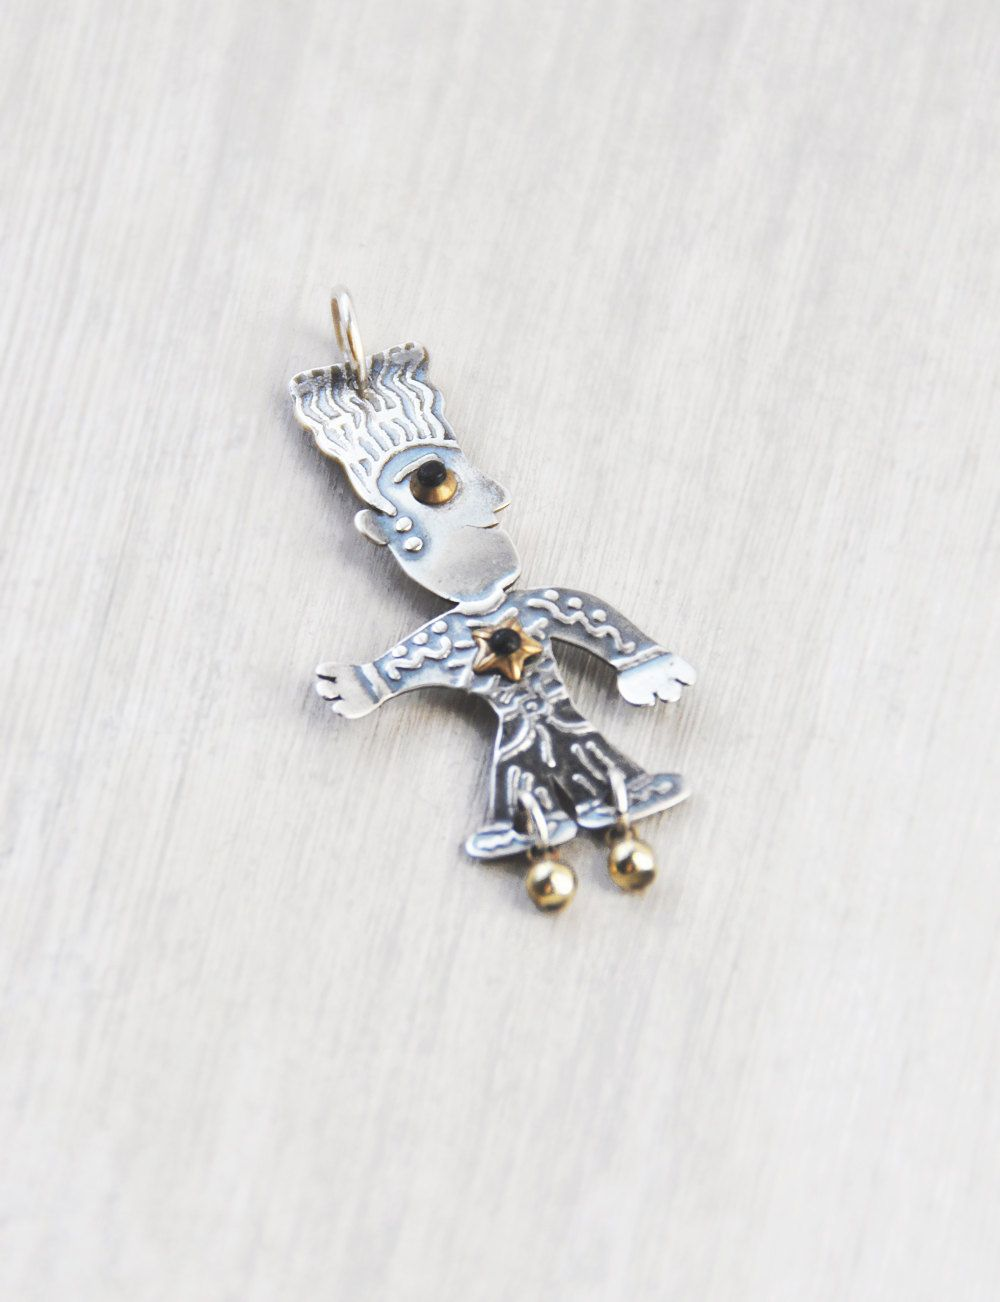 Artisan Sterling Silver Man Pendant - whimsical figure charm with brass accents - by Jane Carpenter Millodot Jewelry by CuriosityCabinet on Etsy